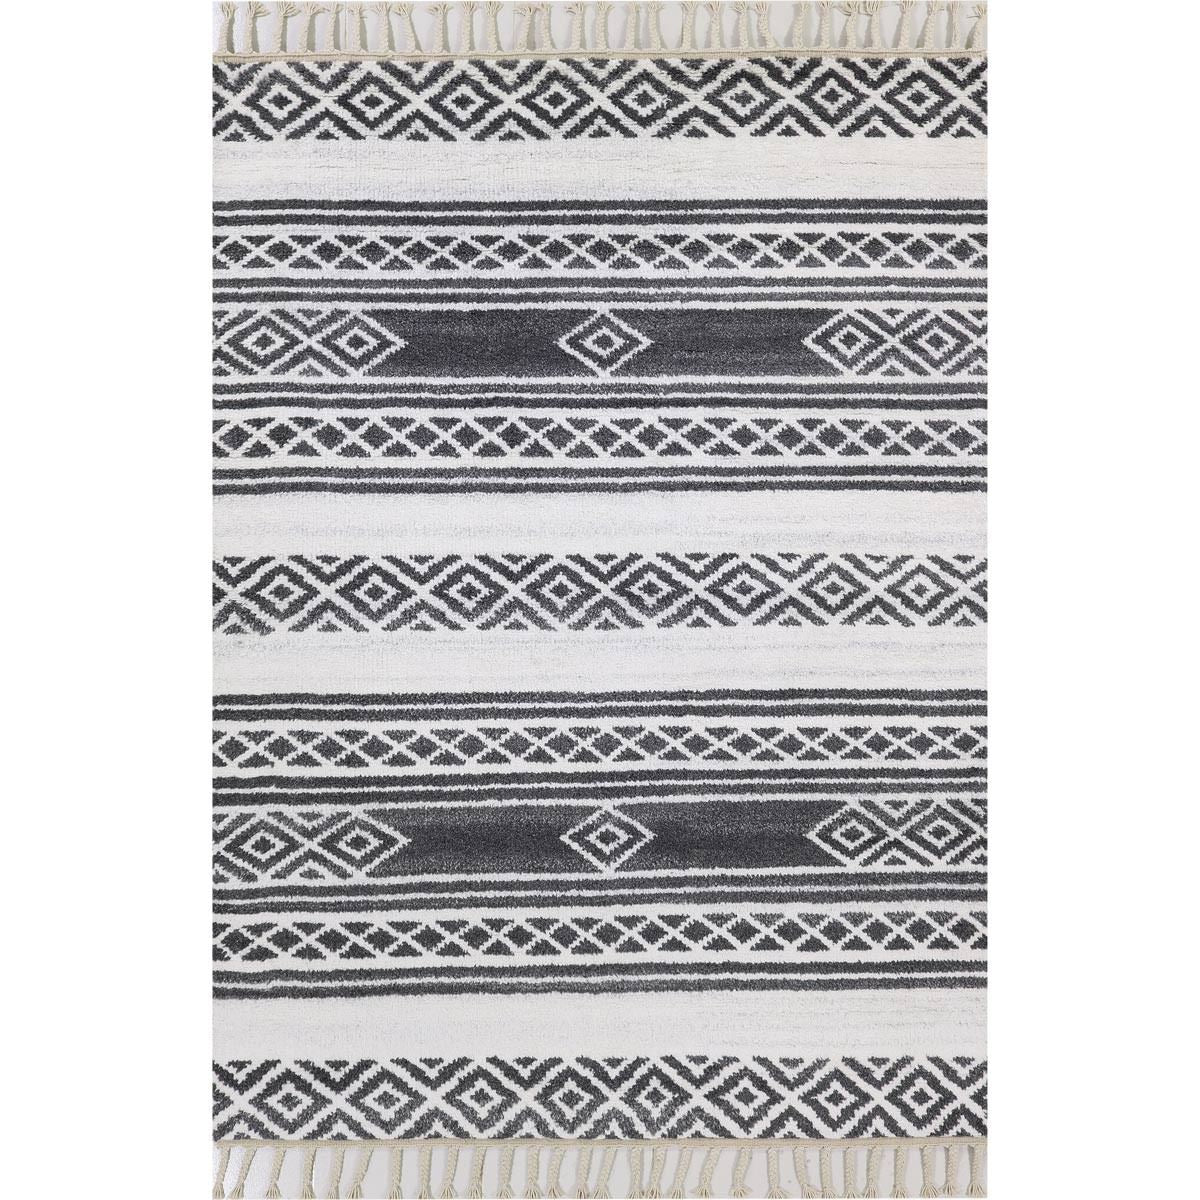 Moroccan Berber Rug 04 Dark Grey/White 1